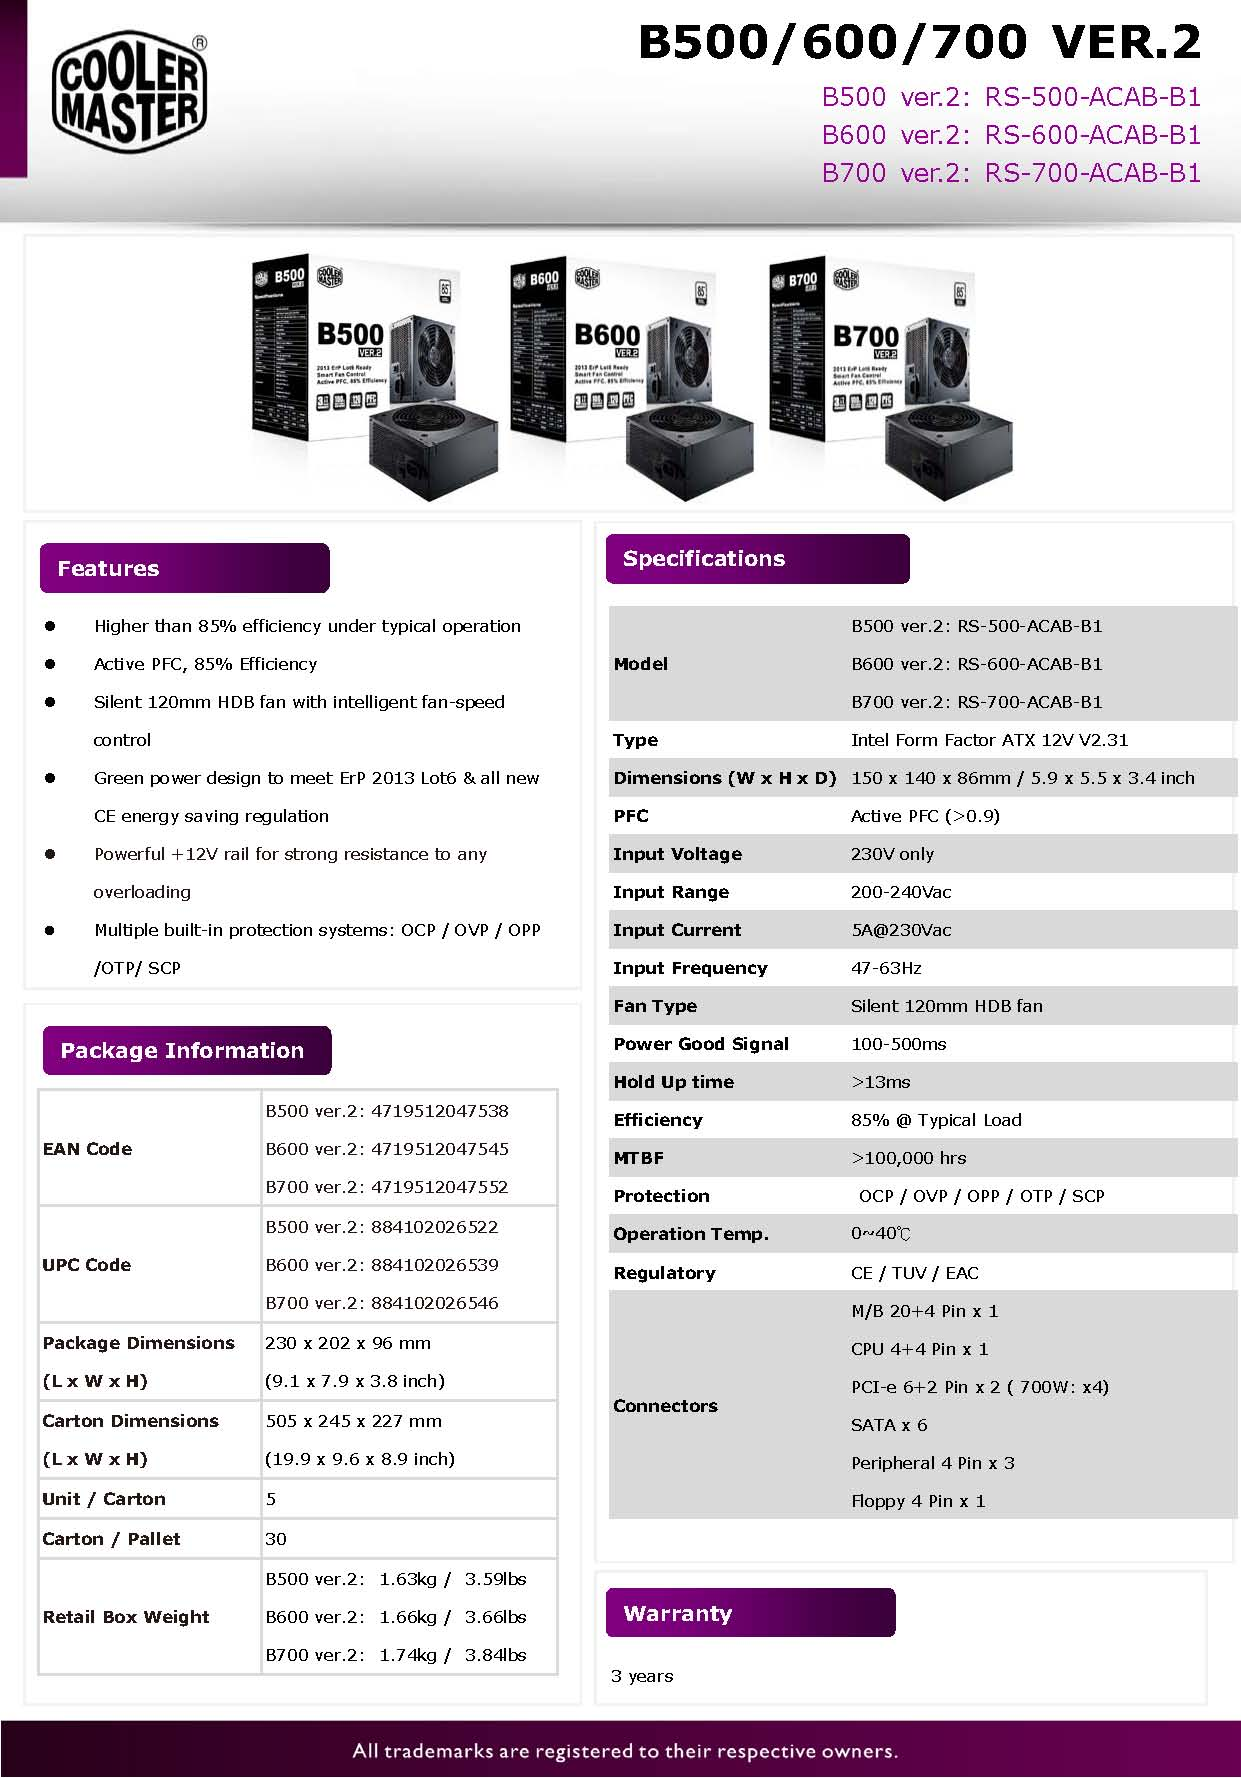 Cooler Master B-series ver.2 Power Supplies Now Available in Malaysia 3